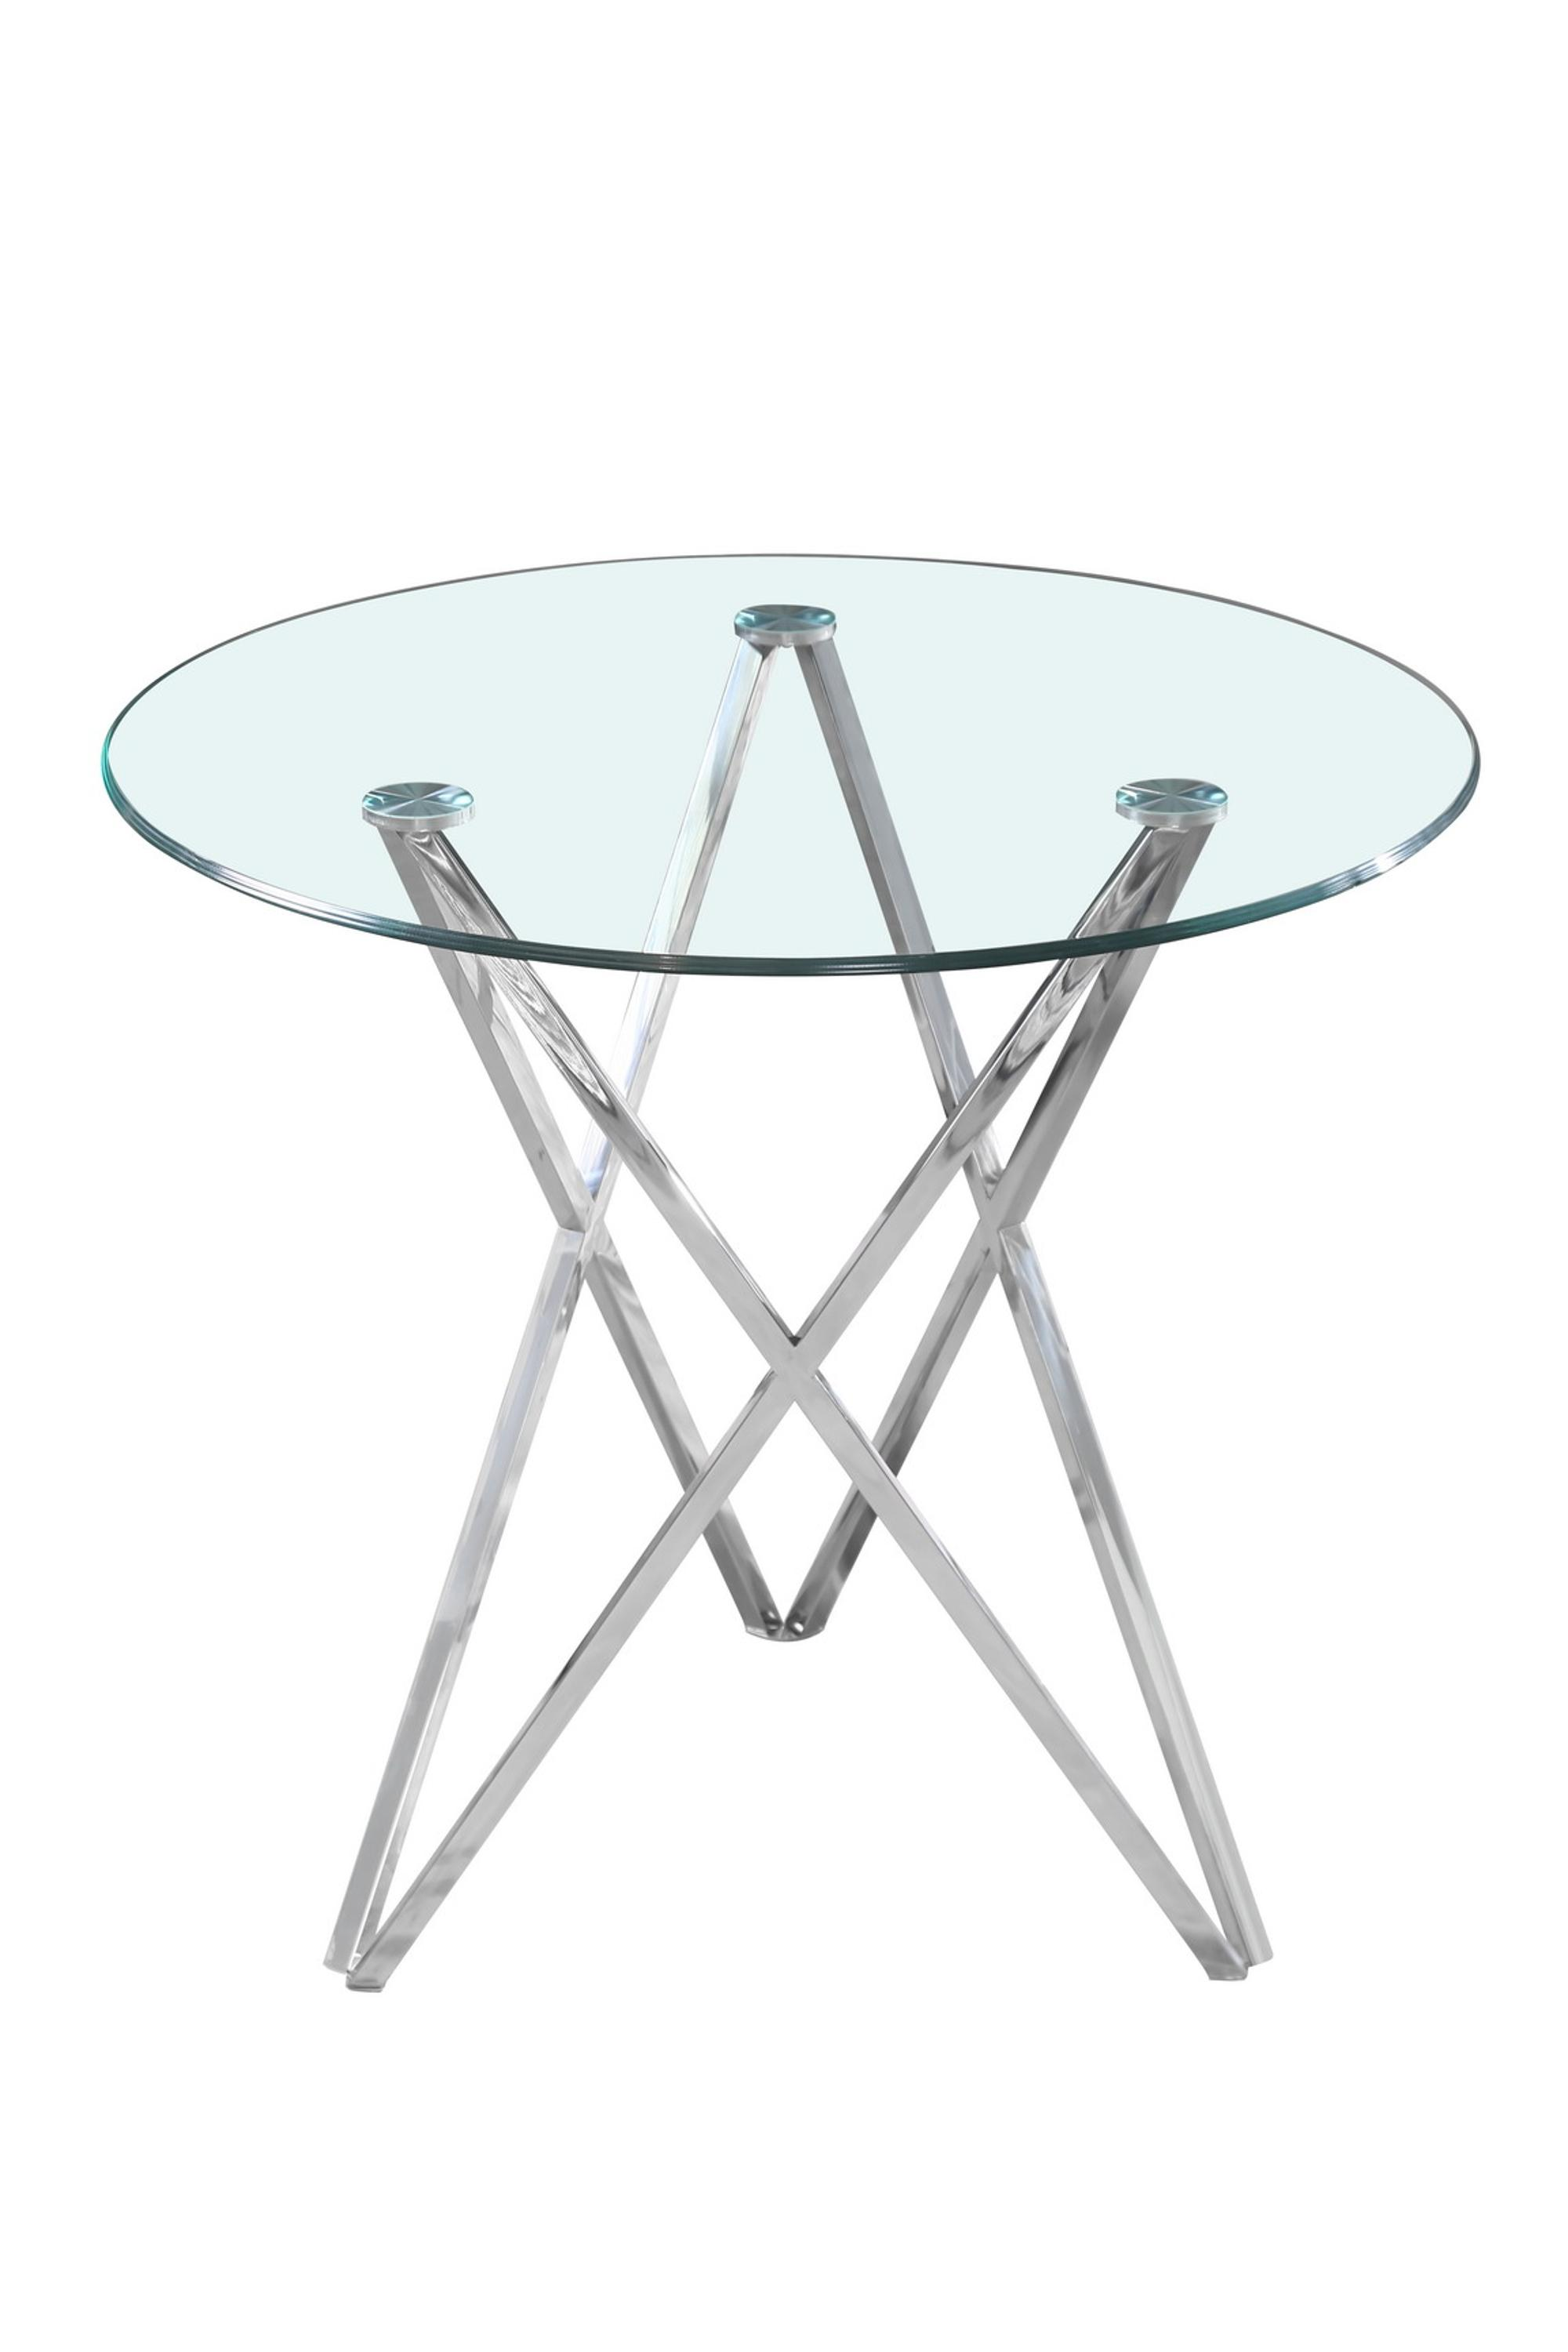 Round Tempered Glass Dining Table